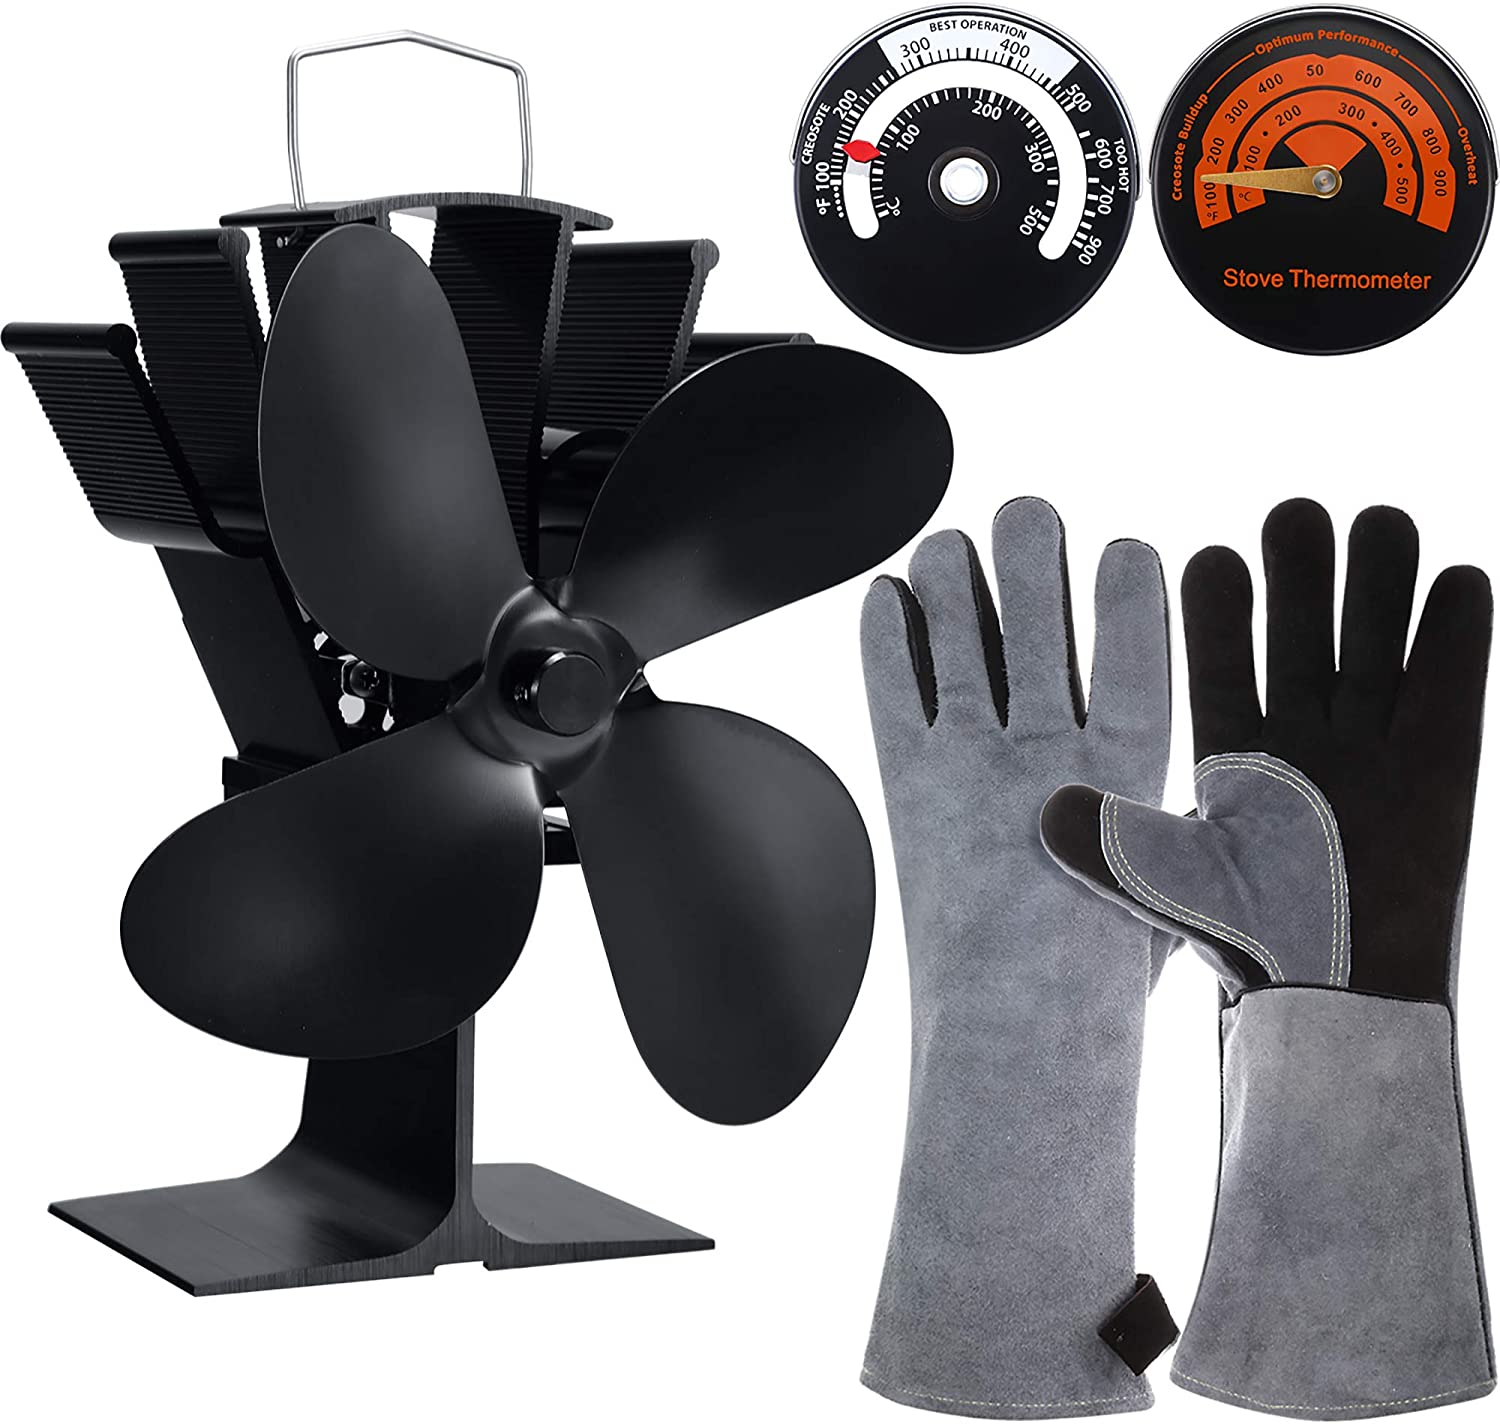 4-Blade Heat Powered Stove Fan Wood Burner Stove Fan, 2 Pieces Magnetic Stove Thermometer Stove Top Meter and Heat Resistant Stove Gloves for Gas Pellet Wood Log Burner Fireplace